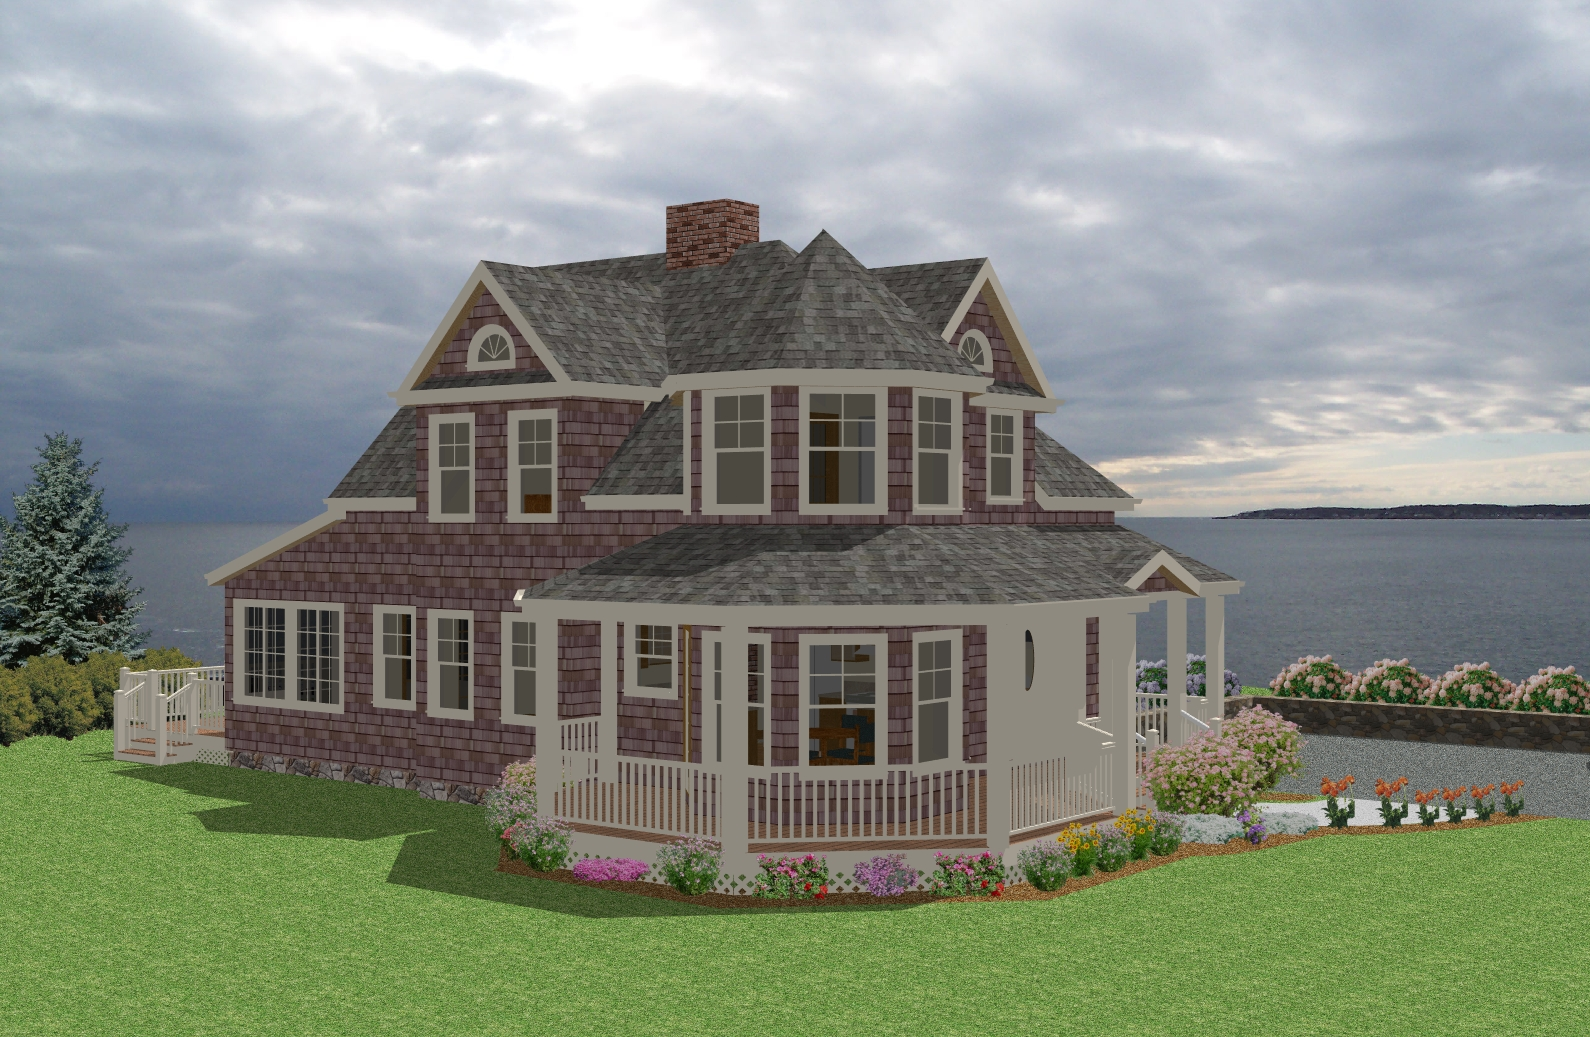 new england cottage house plans find house plans ForNew England Beach House Plans